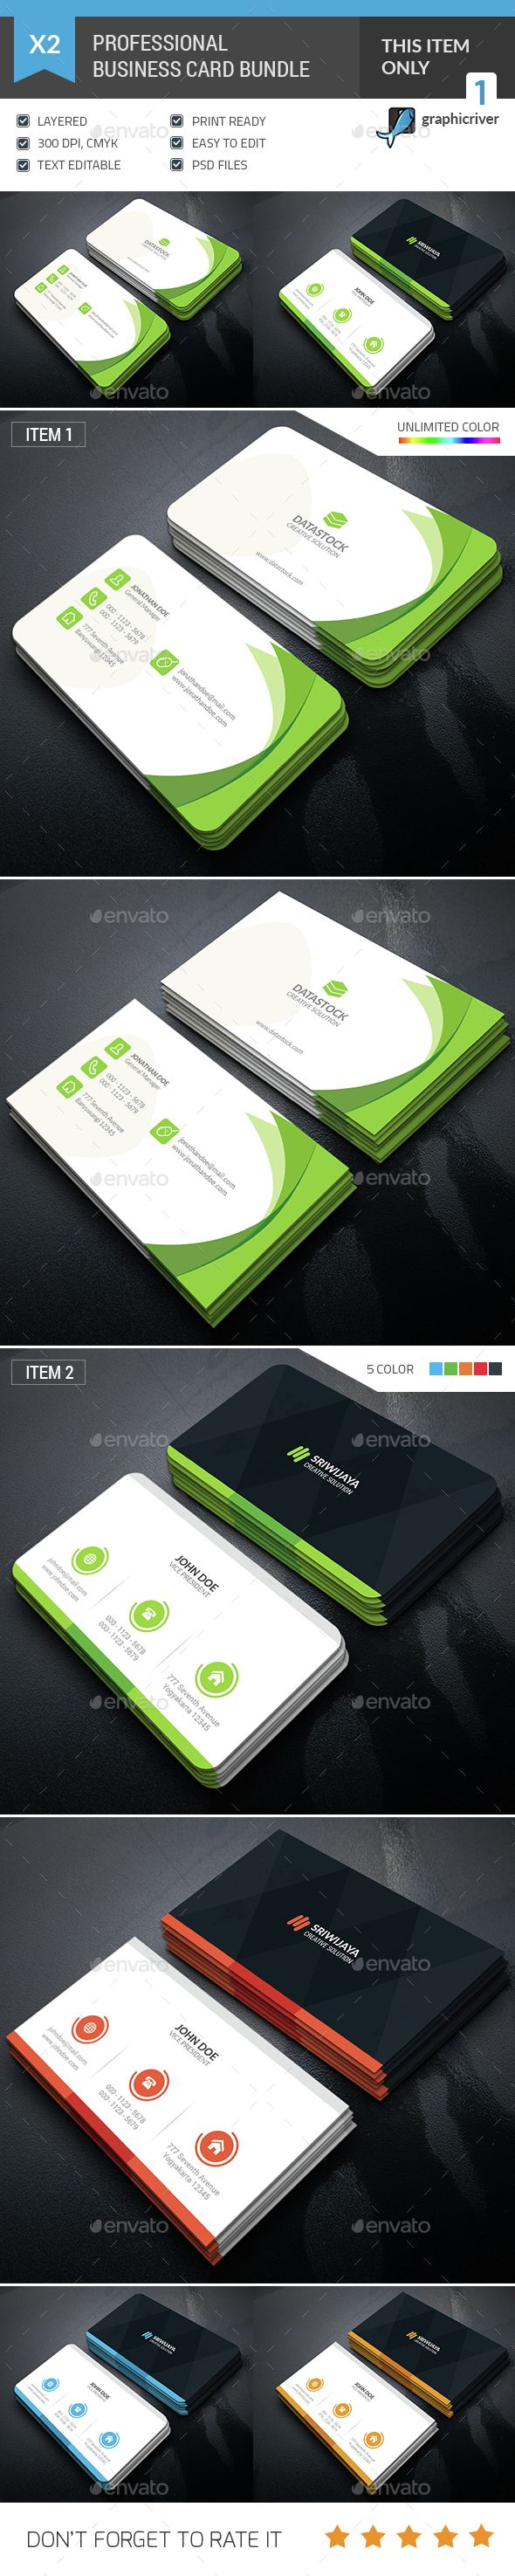 21 Best Business Cards Images On Pinterest Business Card Design